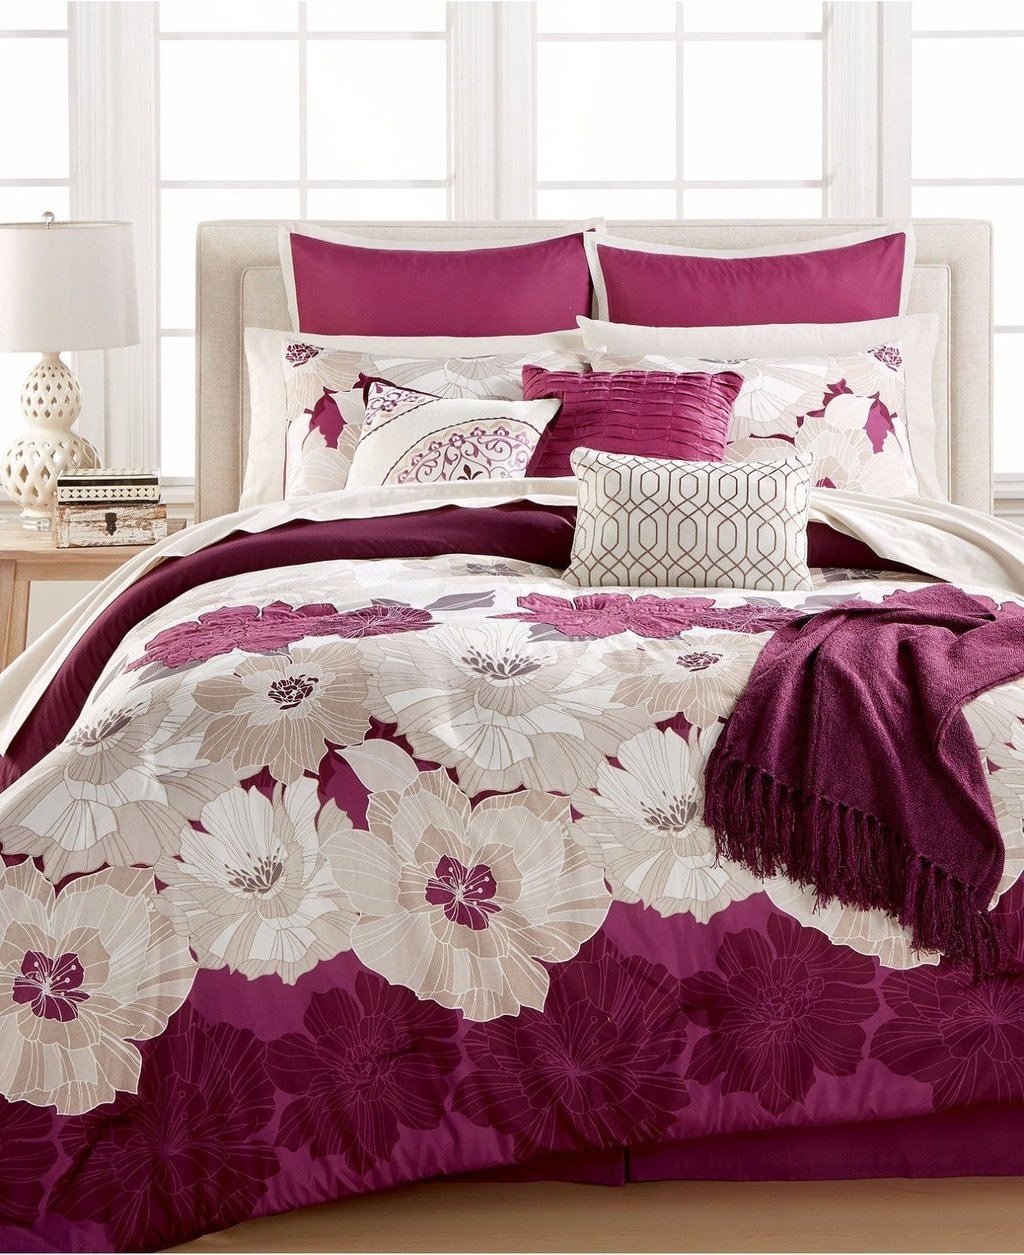 Image of: Queen Size White Purple Comforter Set Girl 3 Piece Romantic Interior French Country Bedding Sets